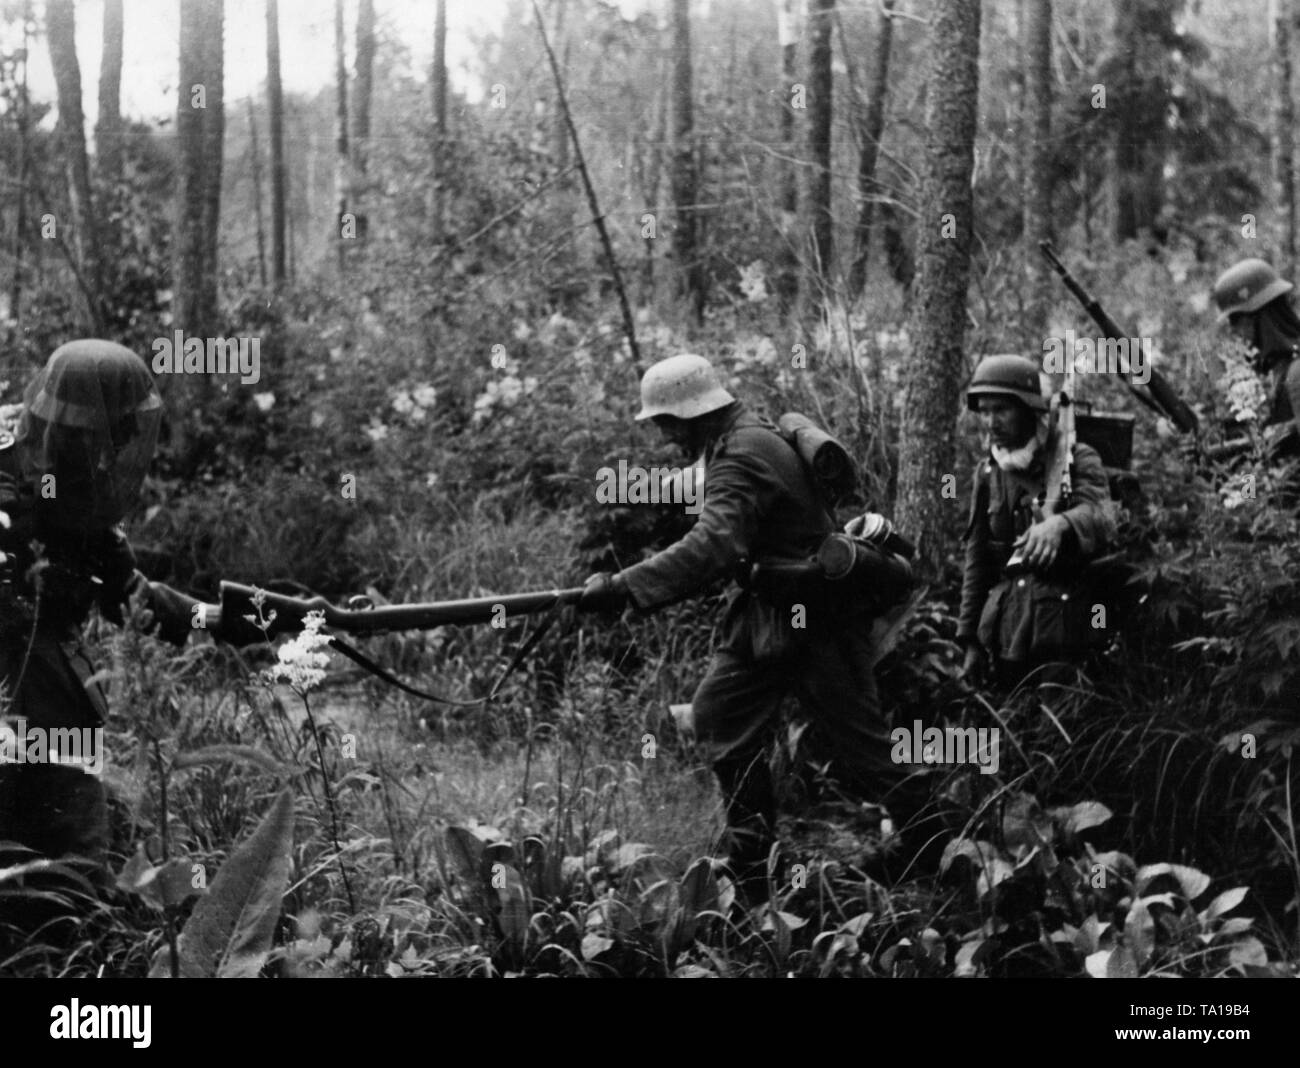 German infantry crosses a marshland east of Kowel. The soldier on the left carries a mosquito net over his helmet. Stock Photo